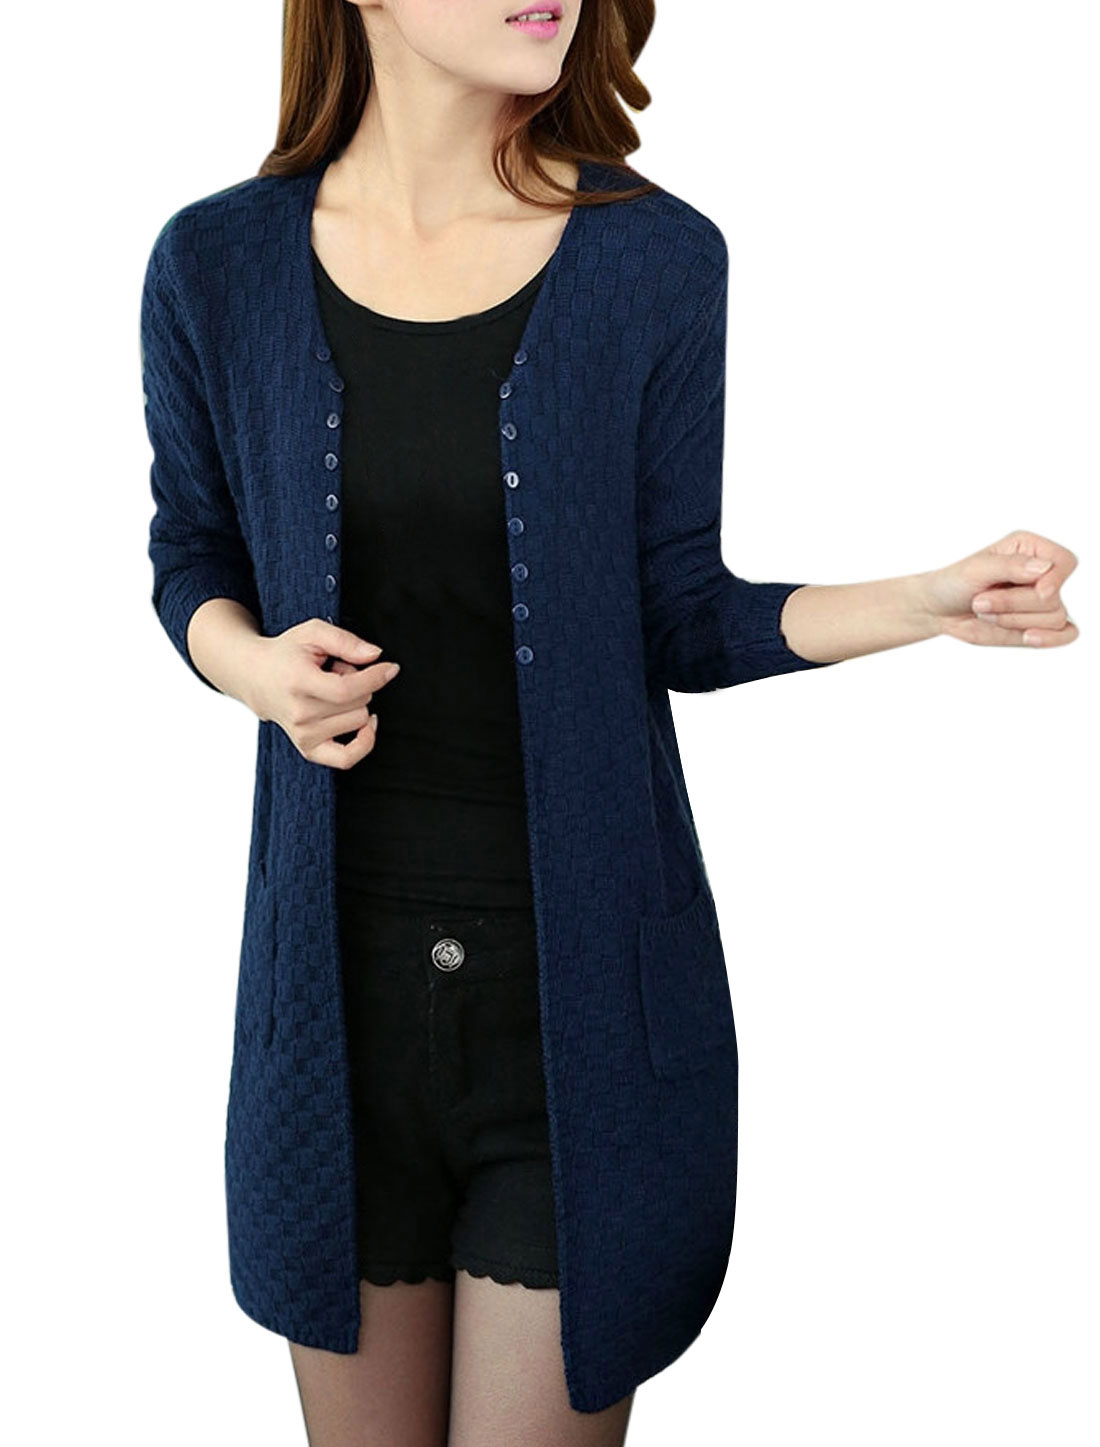 Lady Front Opening Long Sleeve Knit Cardigan Navy Blue S